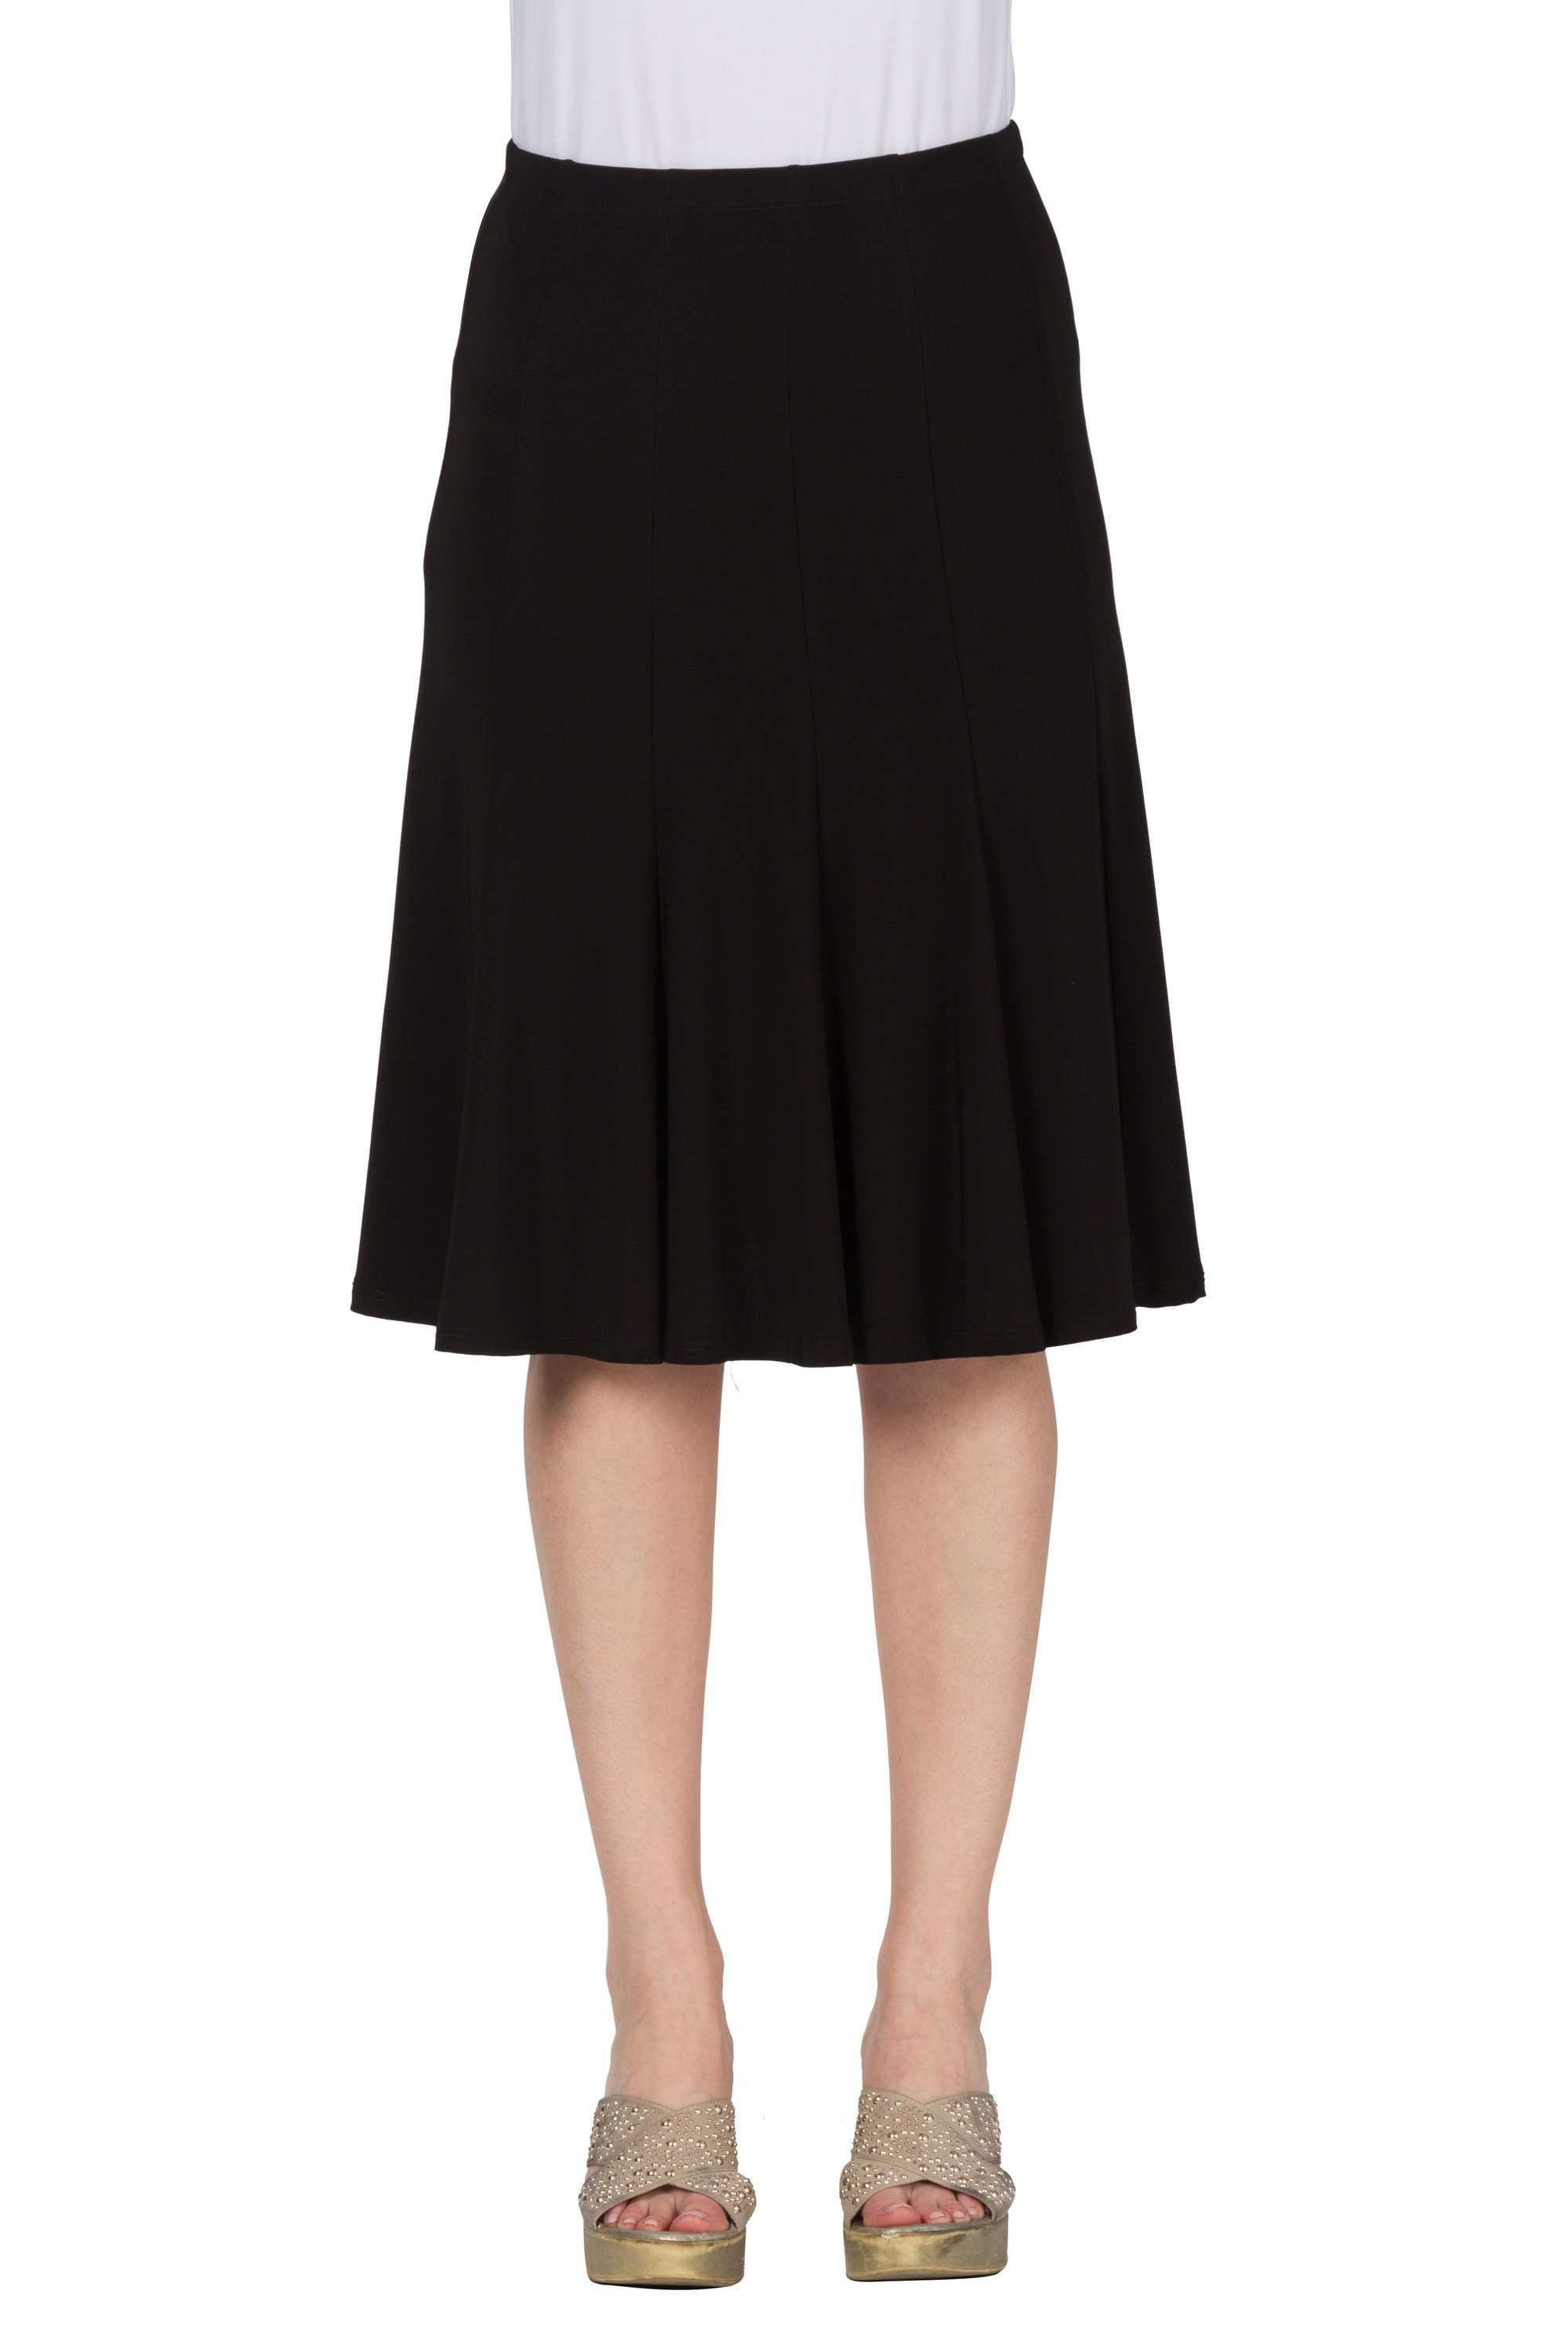 Women's Black Flared Skirt - Yvonne Marie - Yvonne Marie